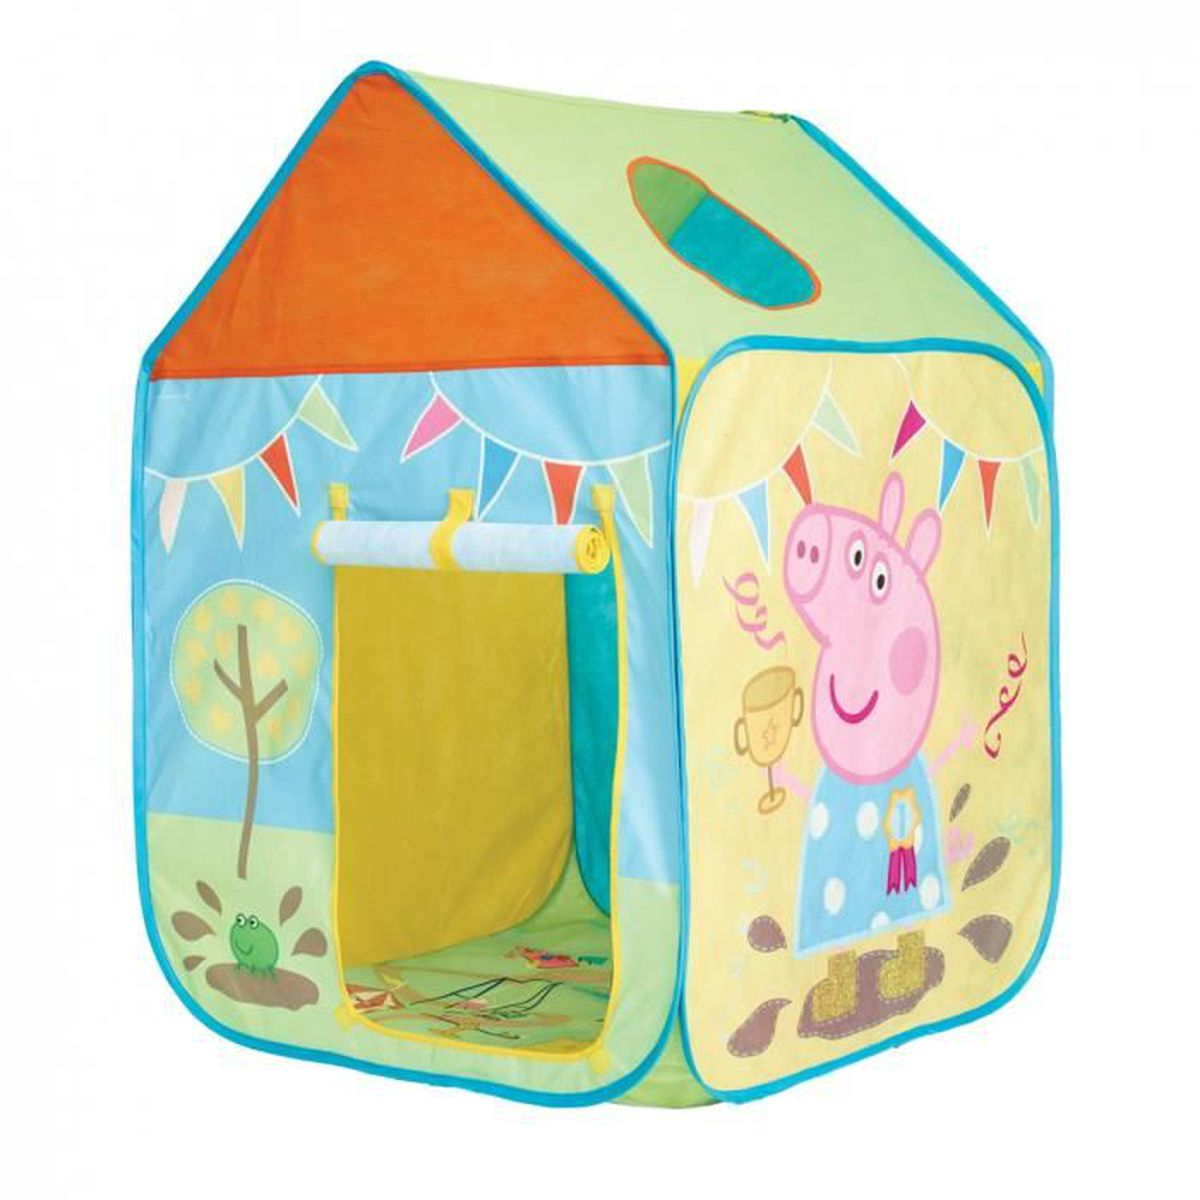 tente cabane de jeux maison fille peppa pig peppa cochon flaque de boue achat vente tente. Black Bedroom Furniture Sets. Home Design Ideas